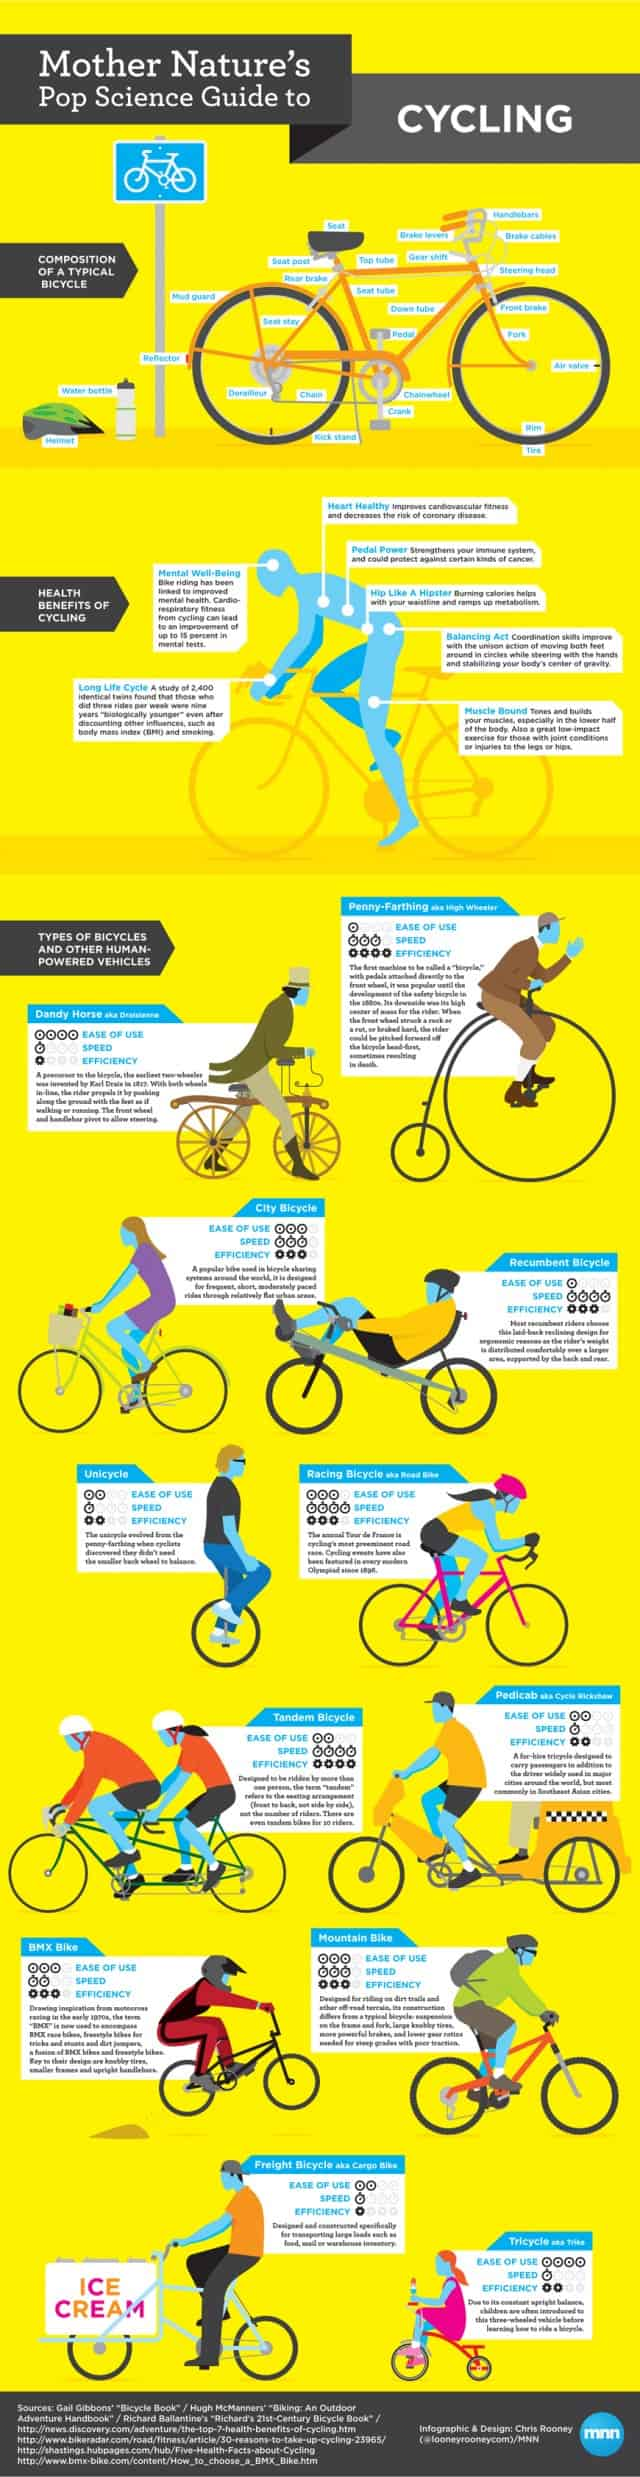 Mother Nature's Pop Science Guide to Cycling